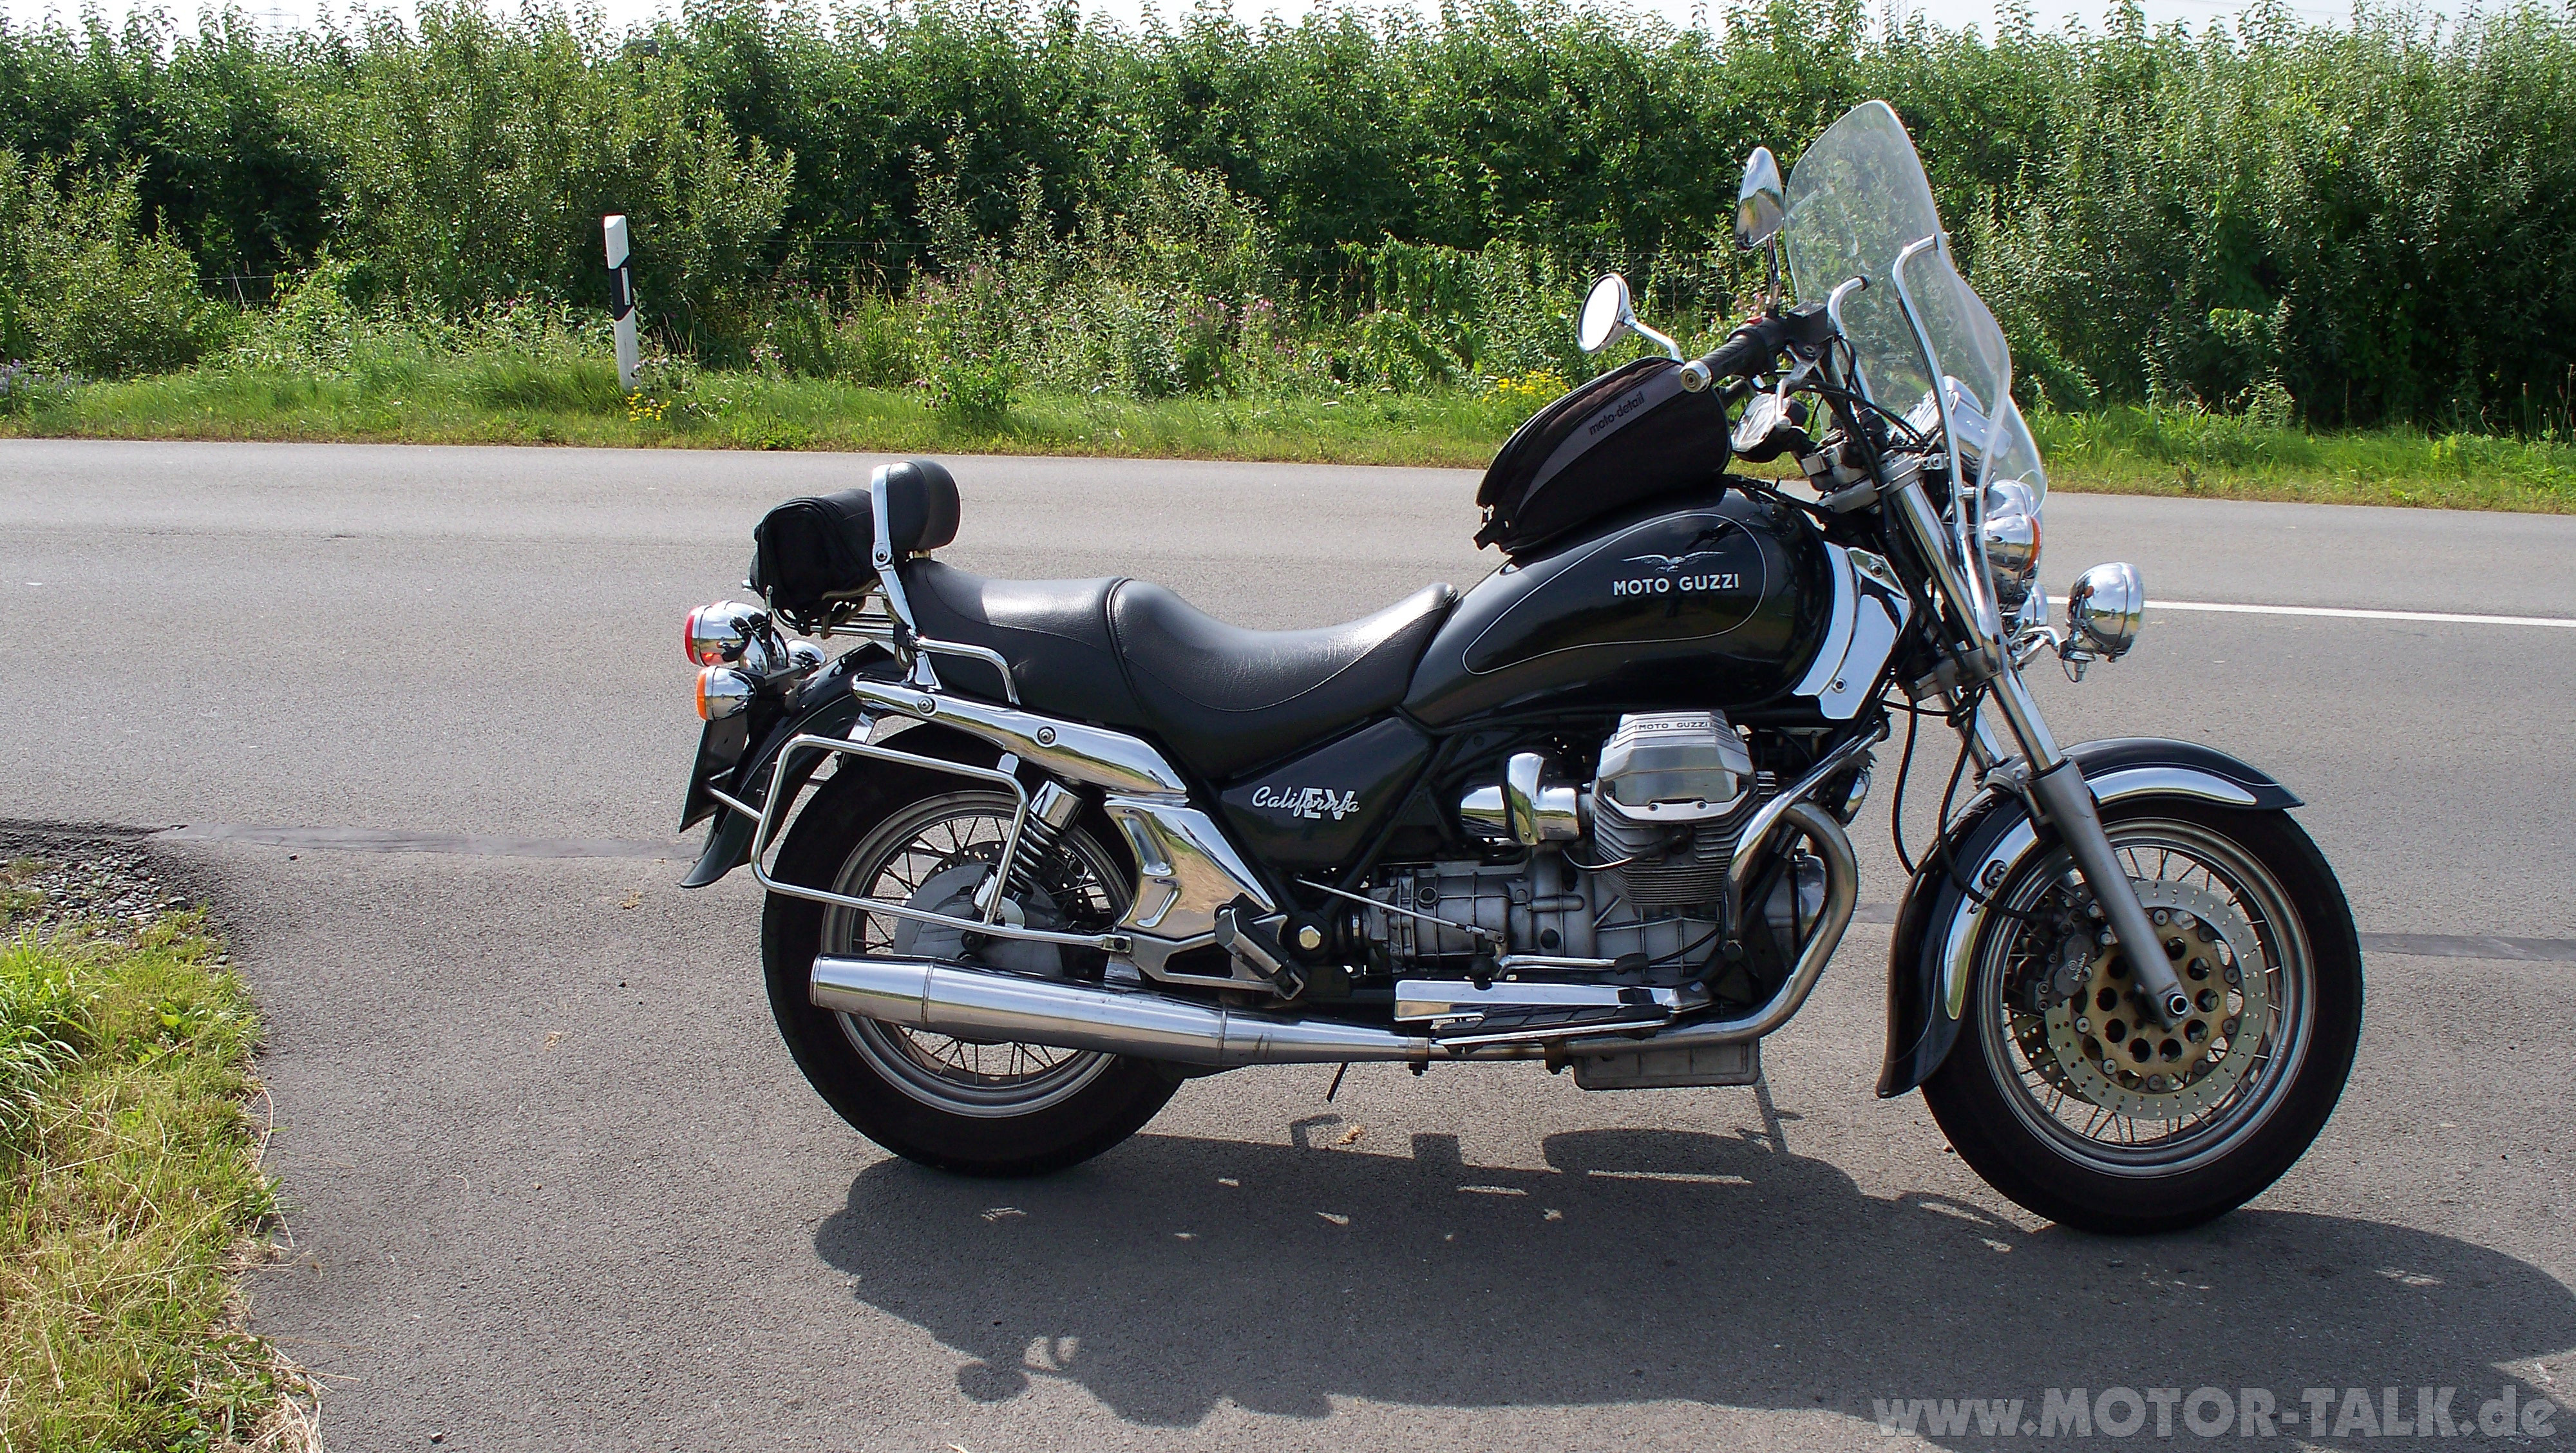 Moto Guzzi California 1100 i 1997 images #108846